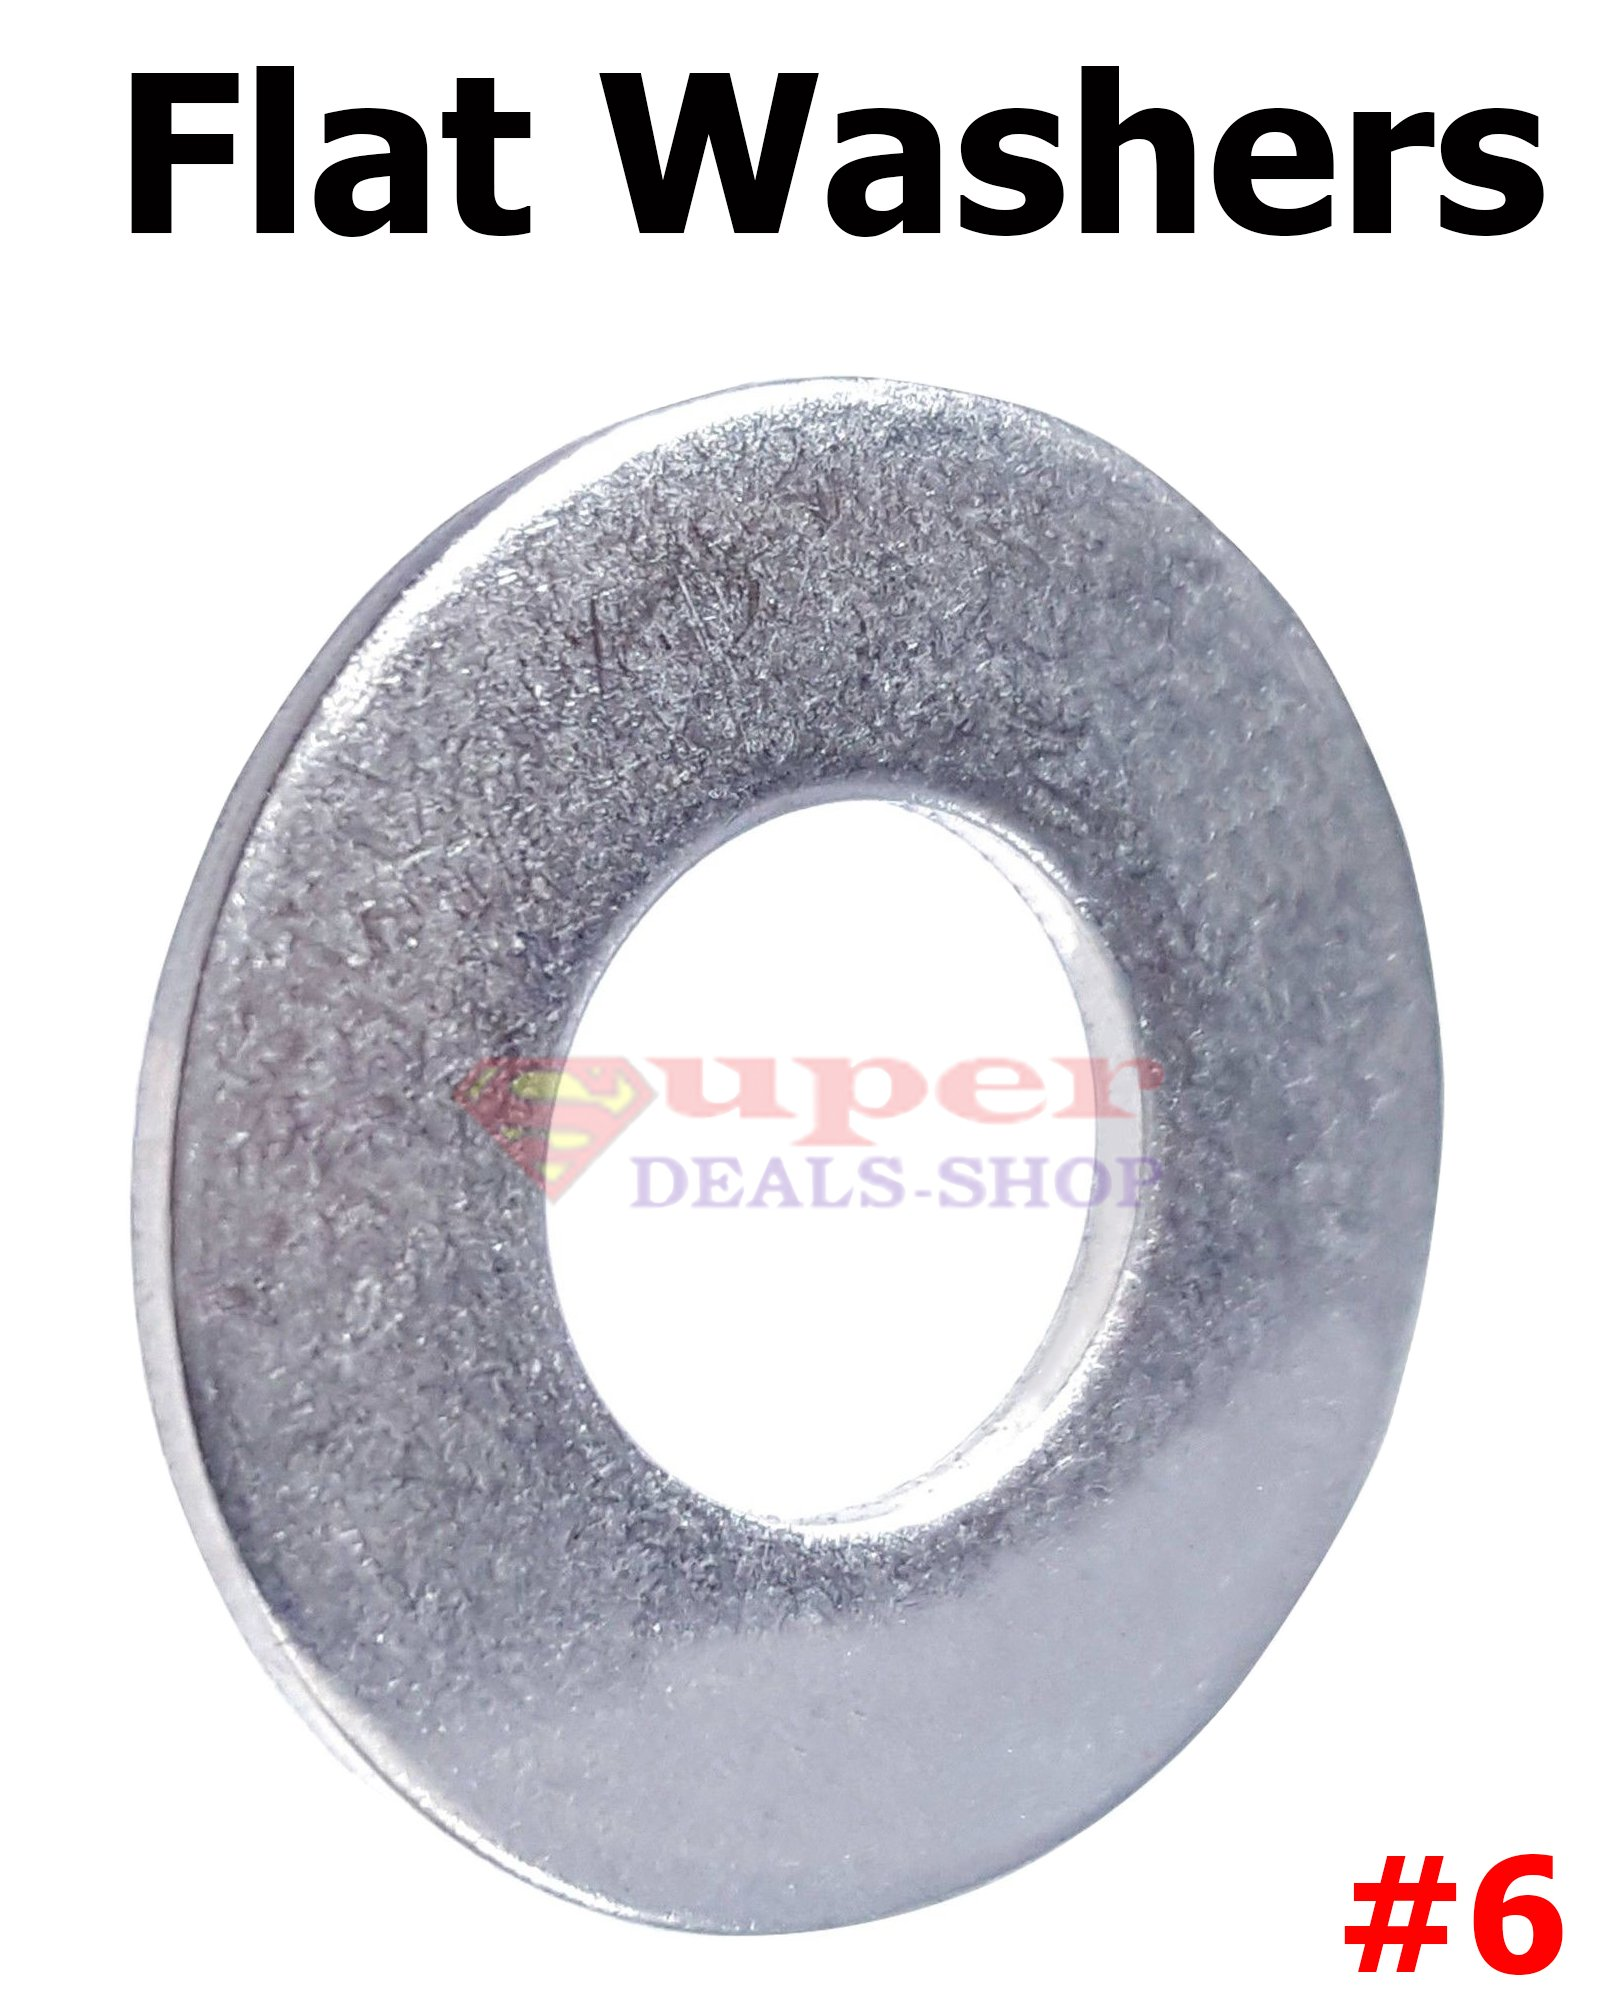 1000 Pcs #6 Stainless Steel Flat Washers SS Flat Washer Flats Super-Deals-Shop